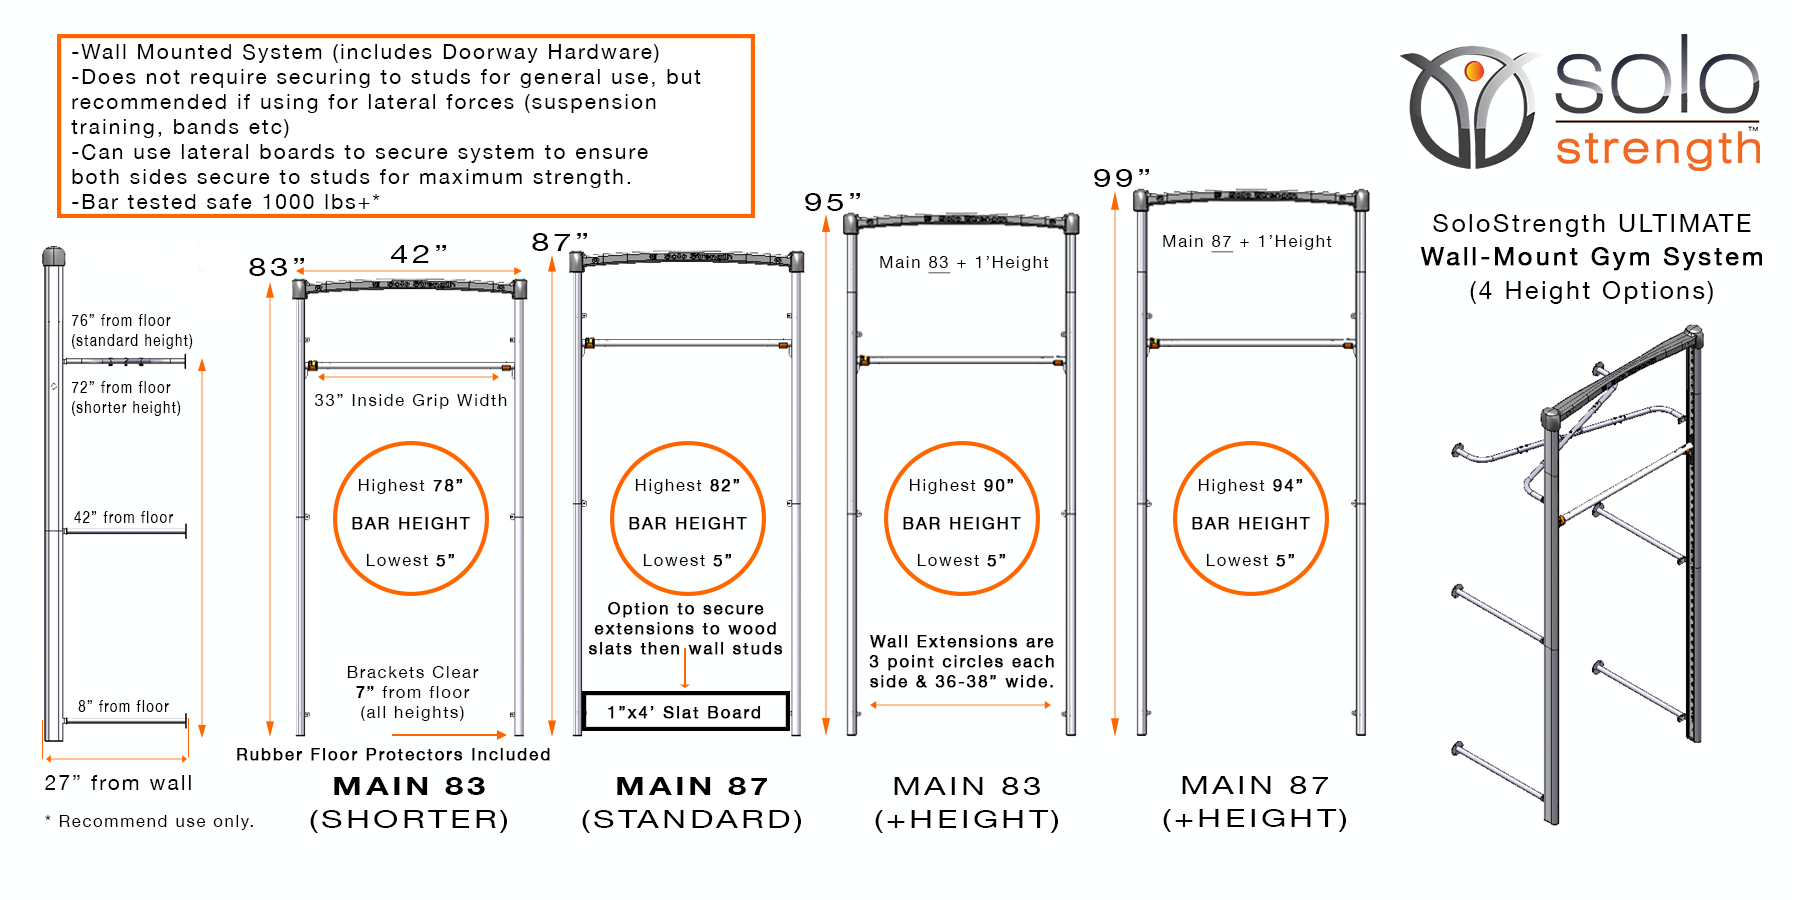 4 Height Options for wall mounted gym - ULTIMATE Wall Mount system